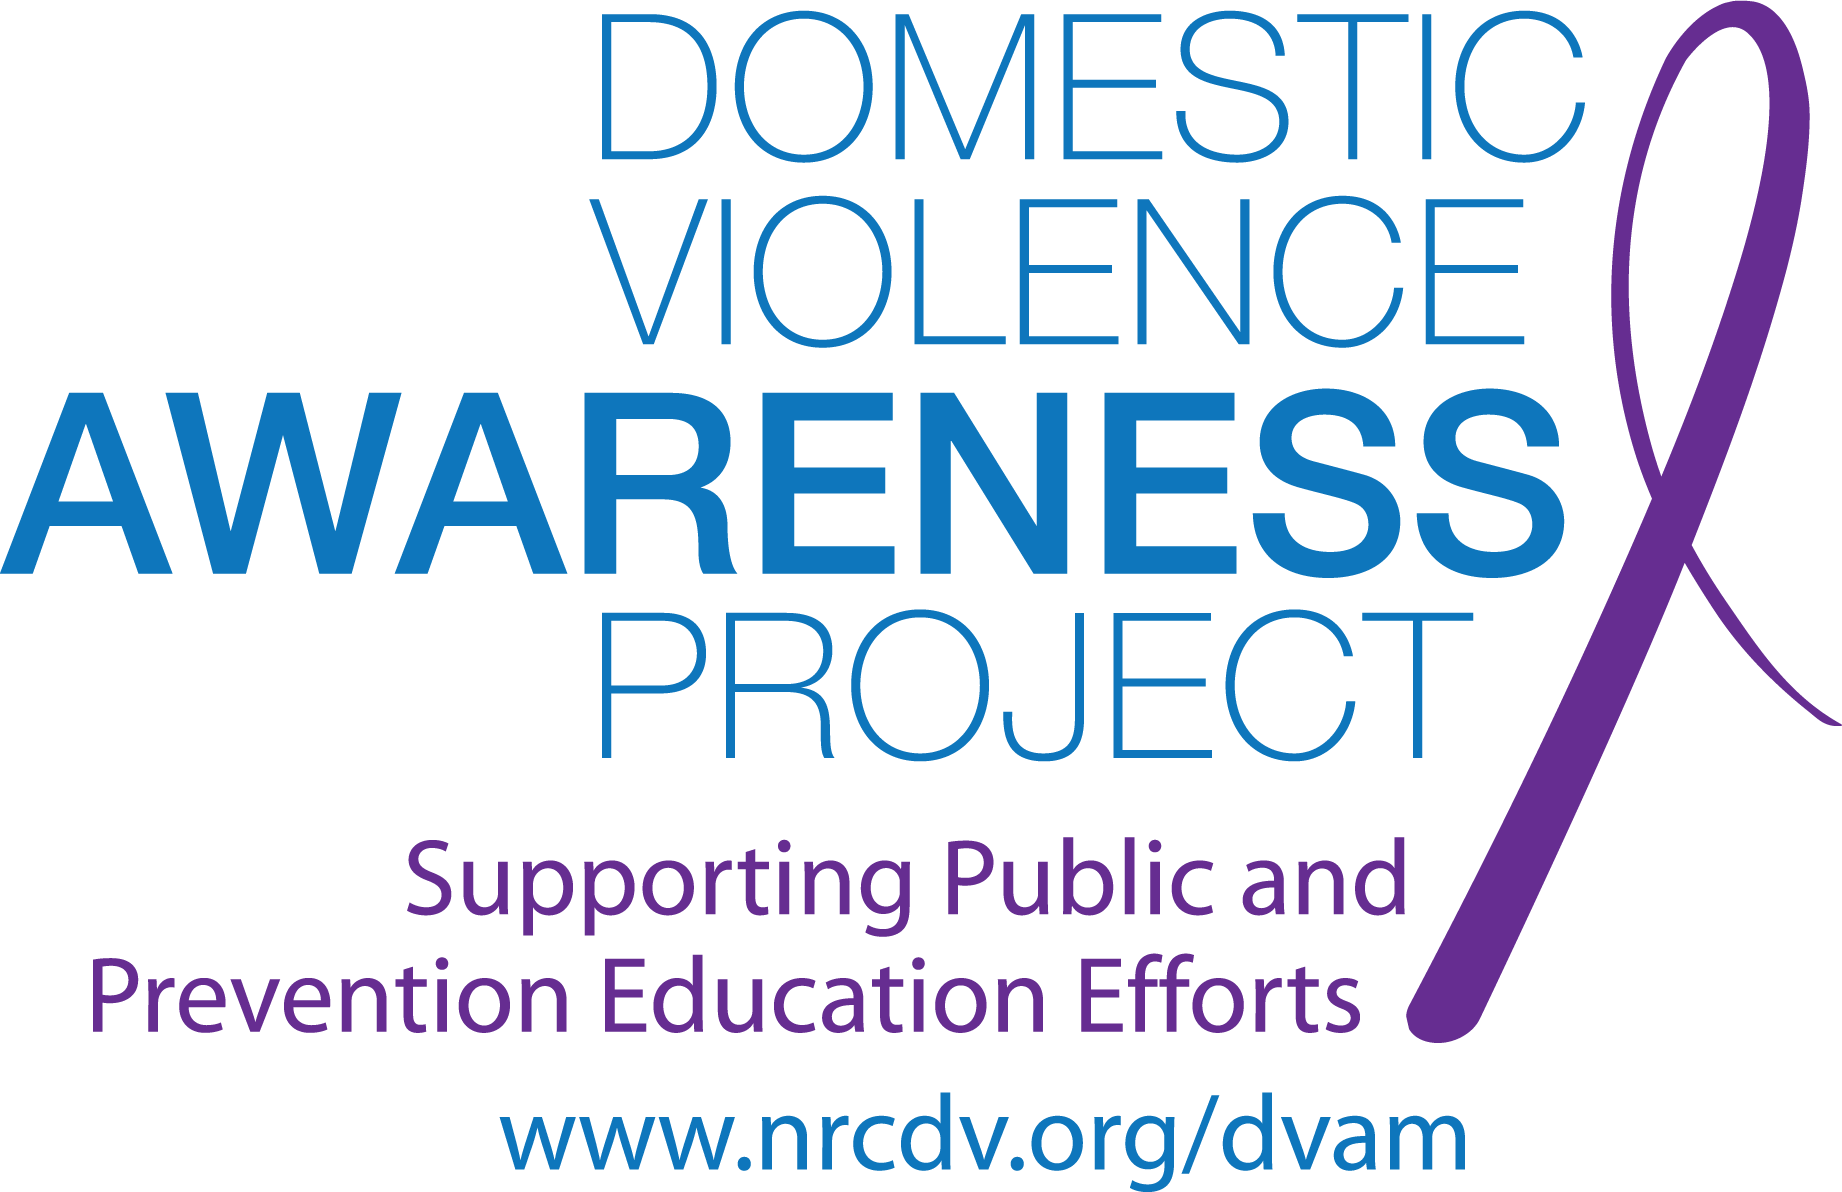 National Domestic Violence Awareness Project